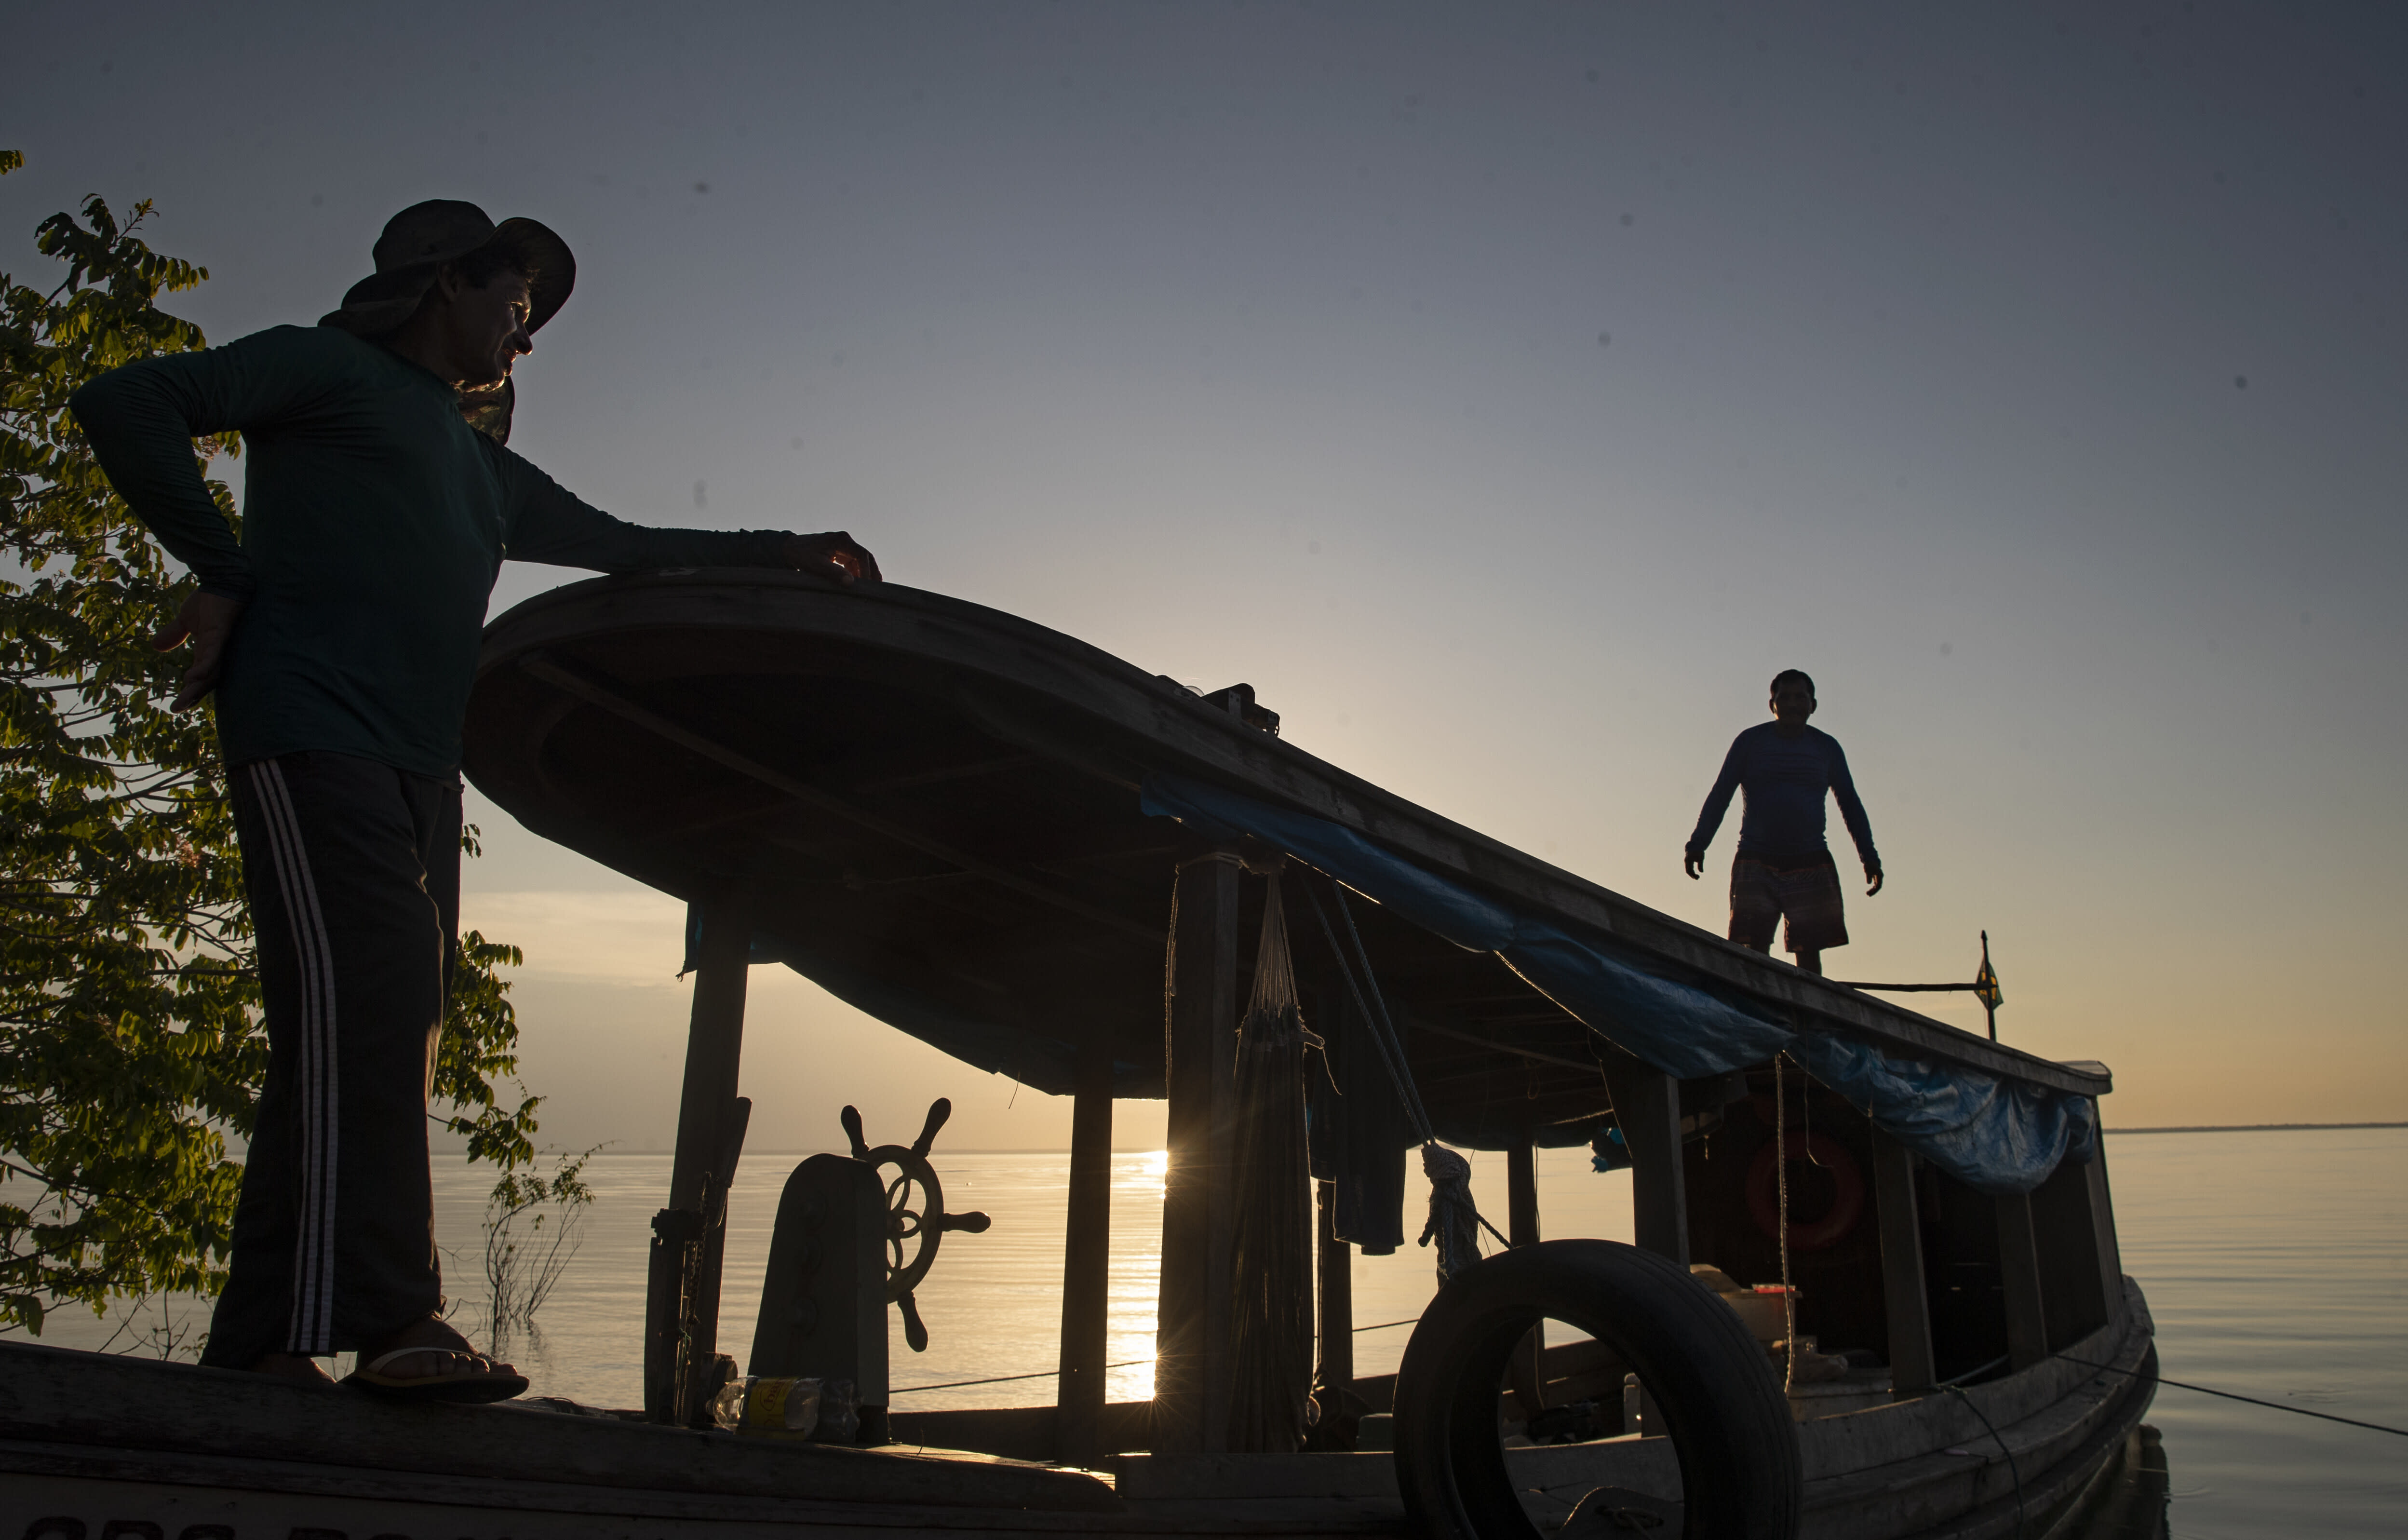 Fishermen walk on their boat as they fish in the Tapajos river in Alter do Chao, district of Santarem, Para state, Brazil, Thursday, Aug. 27, 2020. Last year a massive fire, whose origins are still under investigation, destroyed an area equivalent to 1,600 soccer fields in Alter do Chão. (AP Photo/Andre Penner)